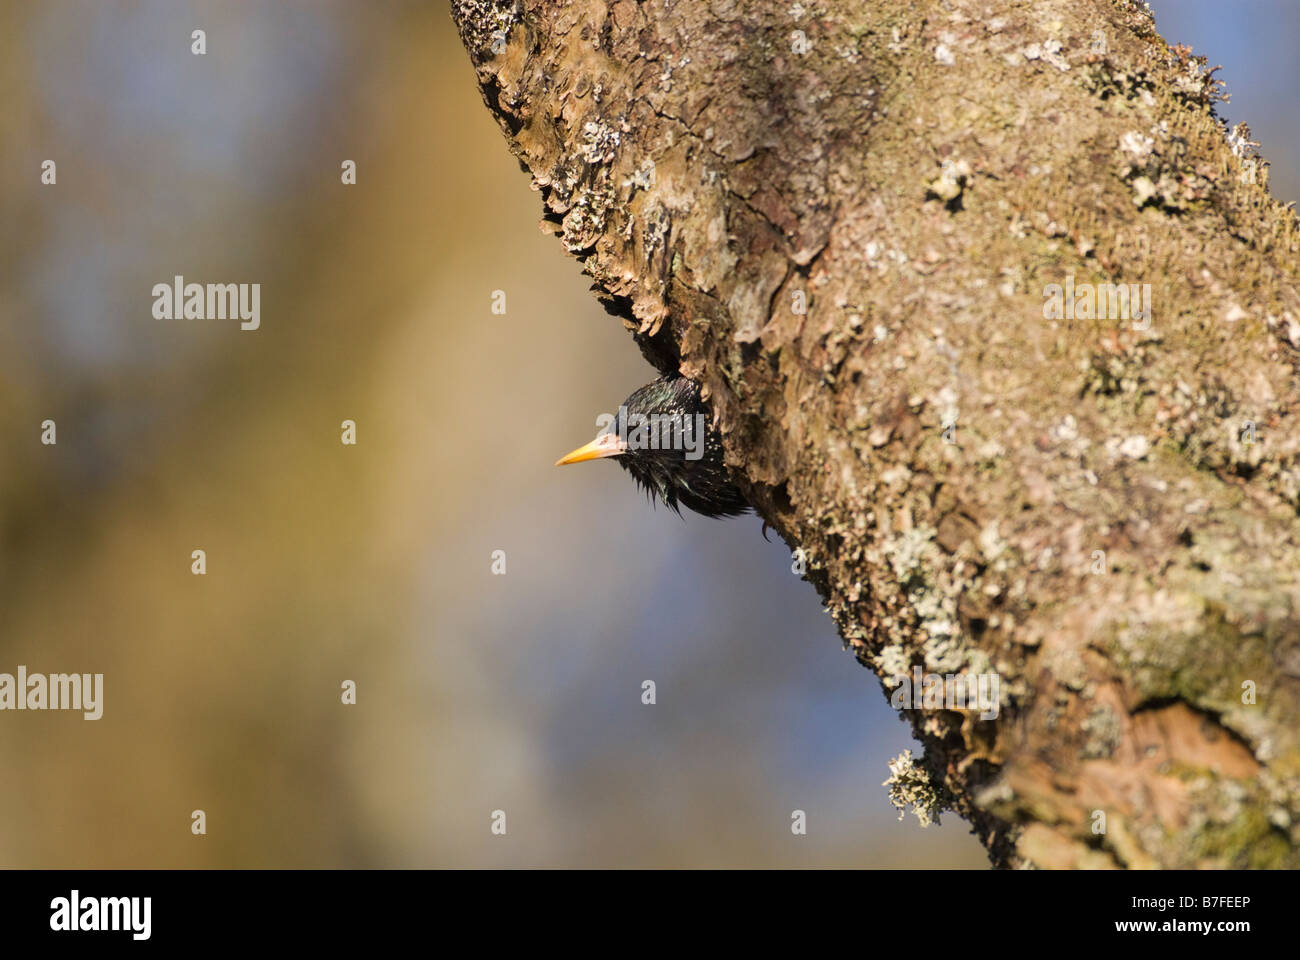 Adult starling Sturnus vulgaris about to leave nest hole in tree South Lanarkshire Scotland April - Stock Image